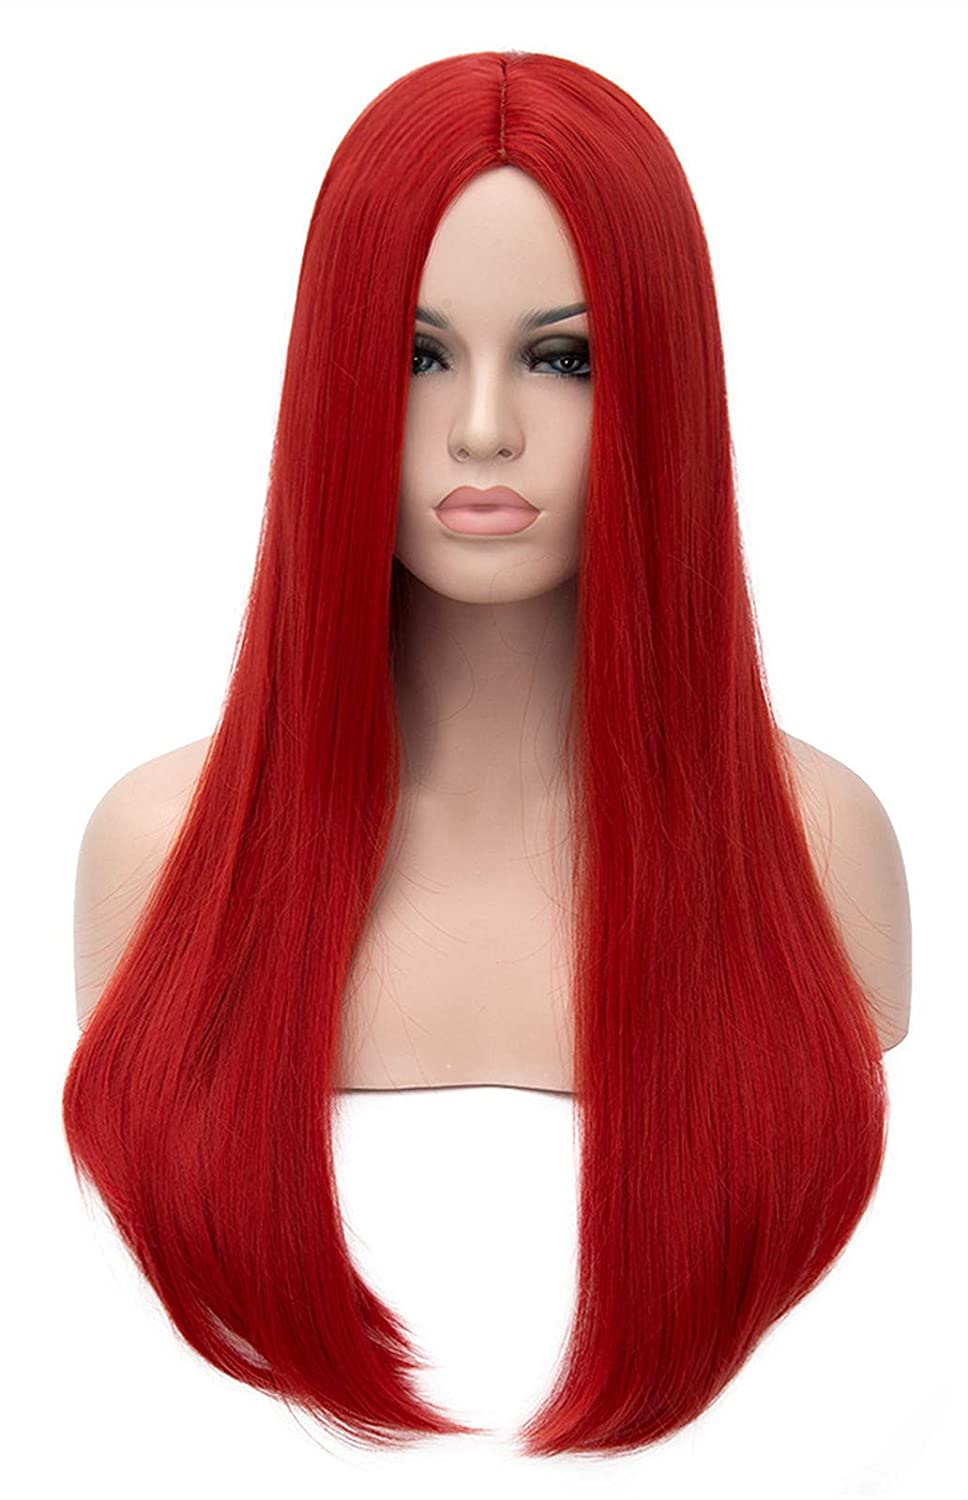 Mersi Long Red Wigs for Women Costume Cosplay Straight Hair Wig Natural Fashion Cute Synthetic Wigs for Daily Party with Wig Net S034R